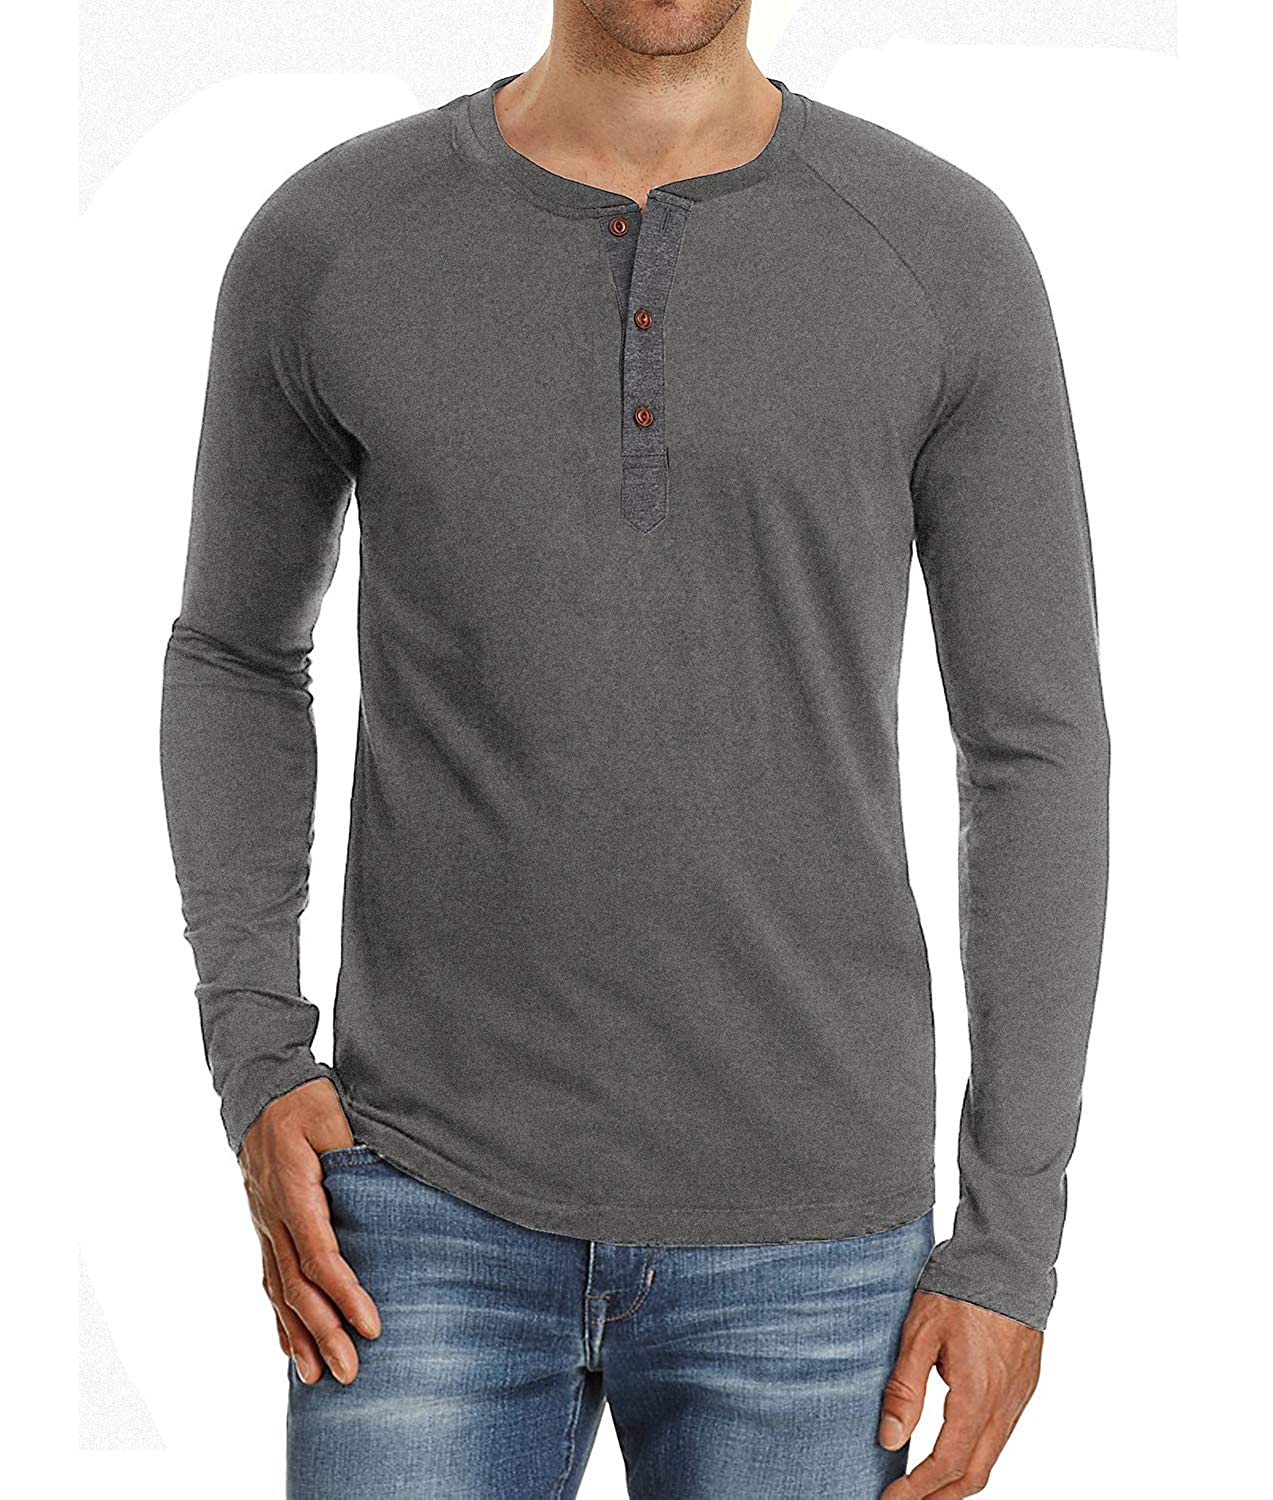 Satankud Mens Casual Regular Fit Long Sleeve Henley T-Shirts Cotton Shirts